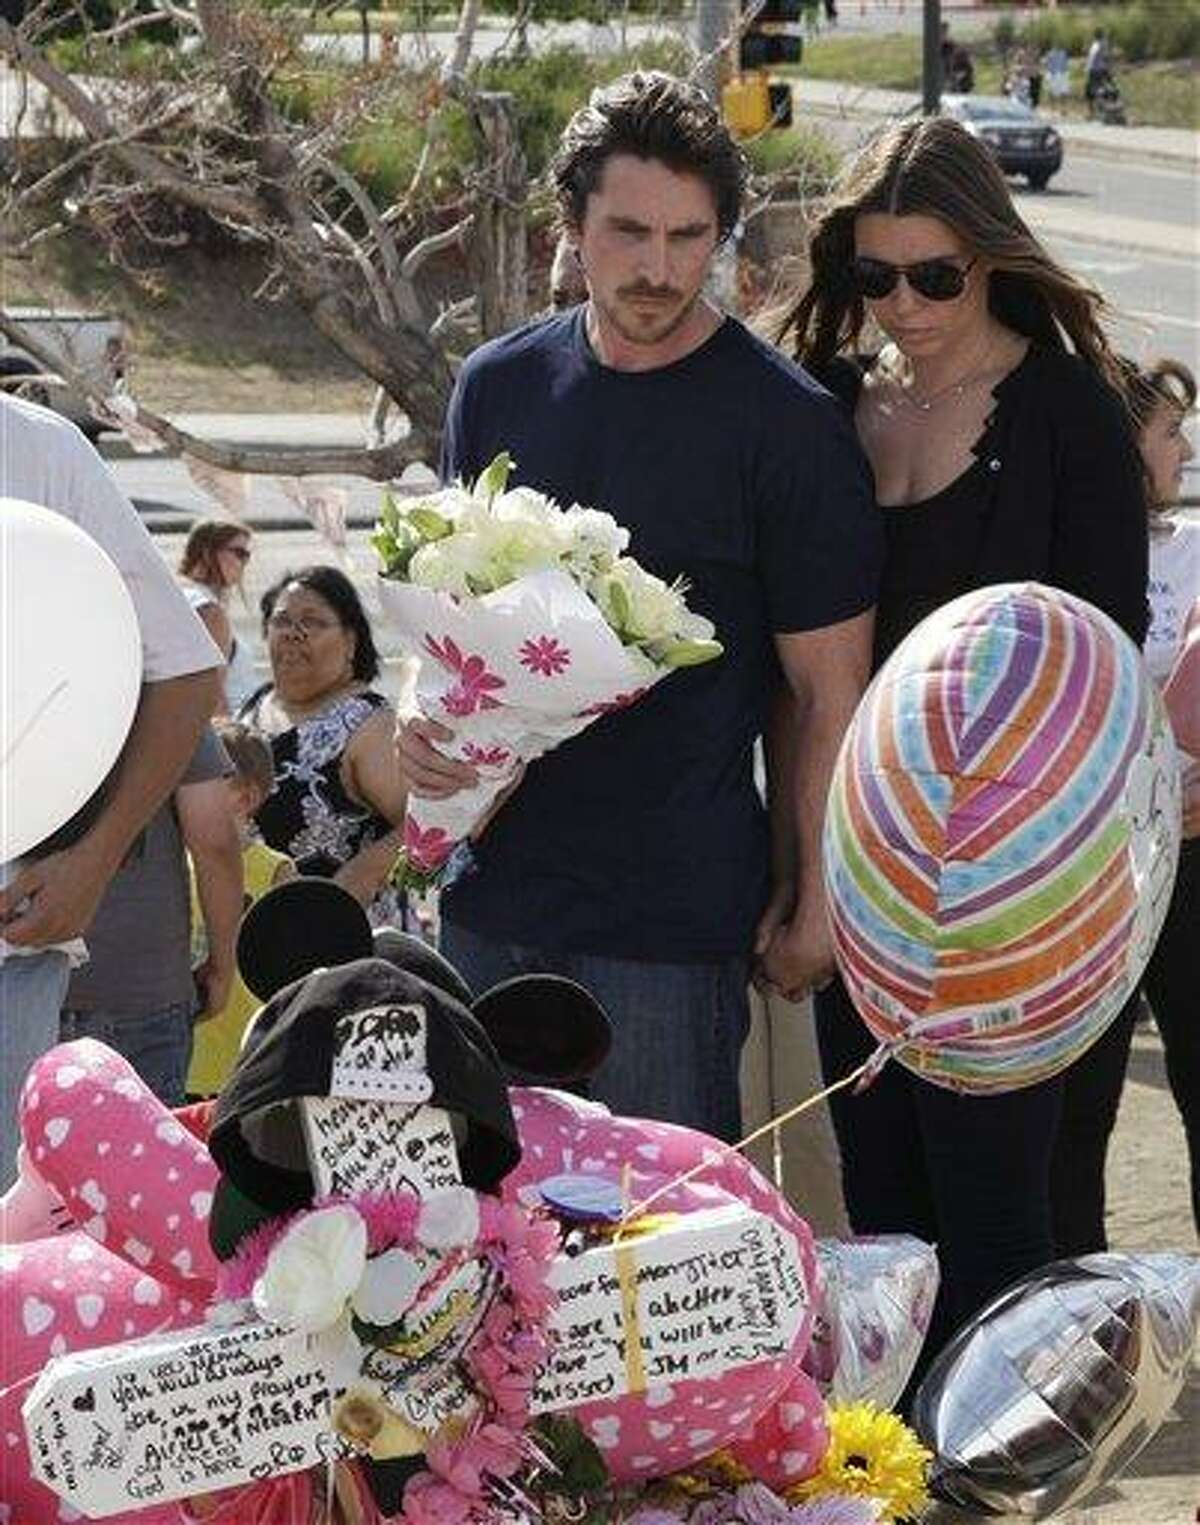 Actor Christian Bale and his wife Sibi Blazic carry flowers as they visit a memorial to the victims of Friday's mass shooting Tuesday in Aurora, Colo. Associated Press